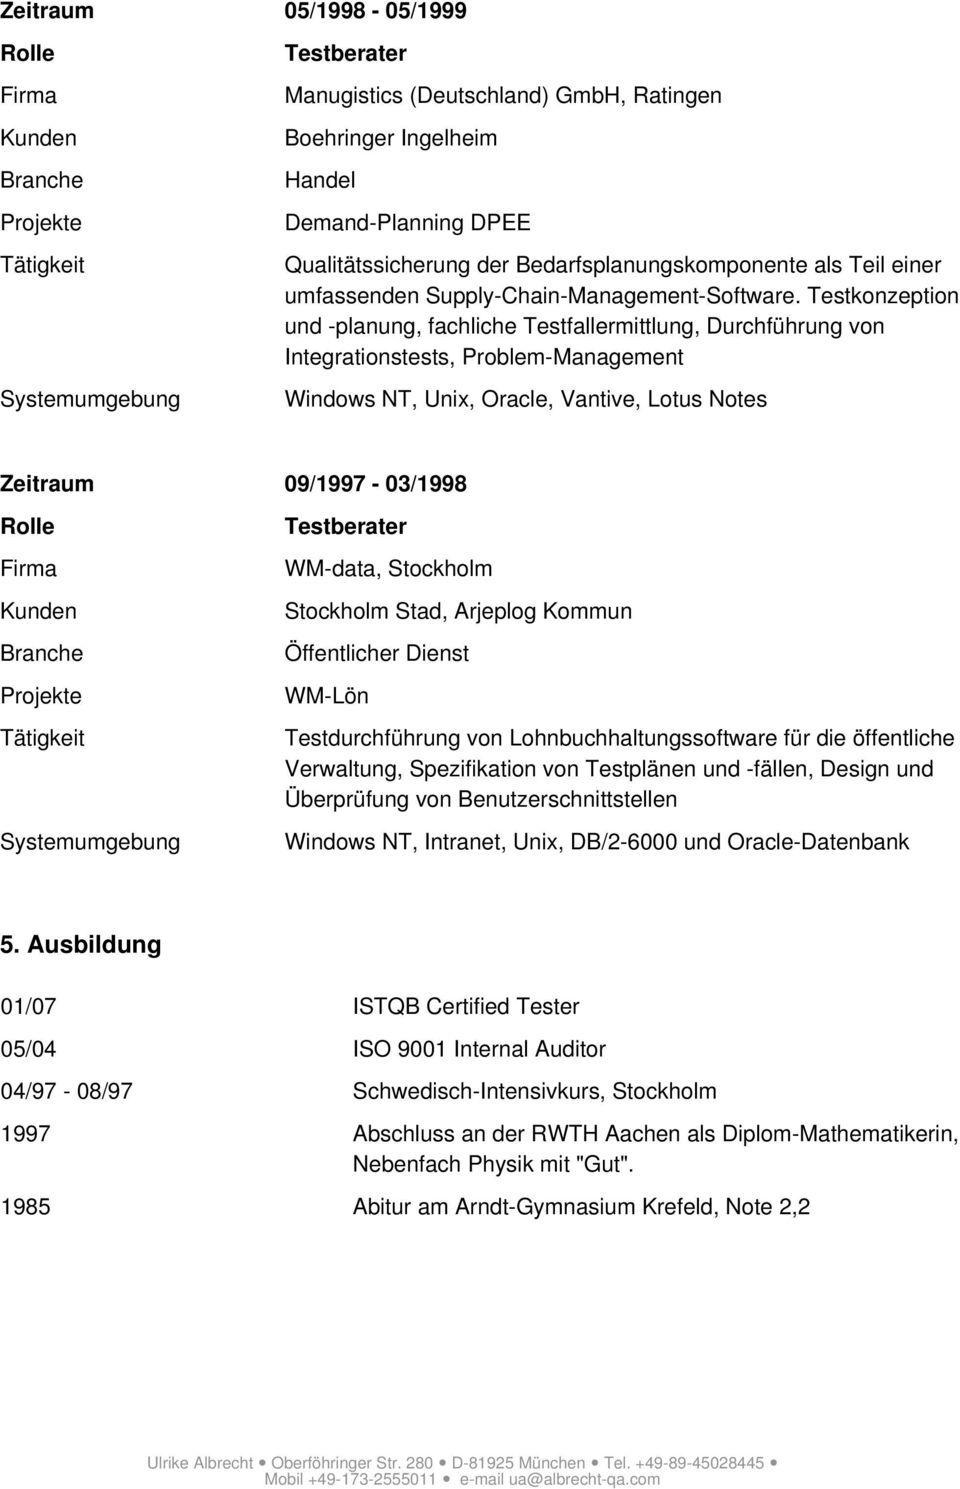 Testkonzeption und -planung, fachliche Testfallermittlung, Durchführung von Integrationstests, Problem-Management Windows NT, Unix, Oracle, Vantive, Lotus Notes Zeitraum 09/1997-03/1998 n e